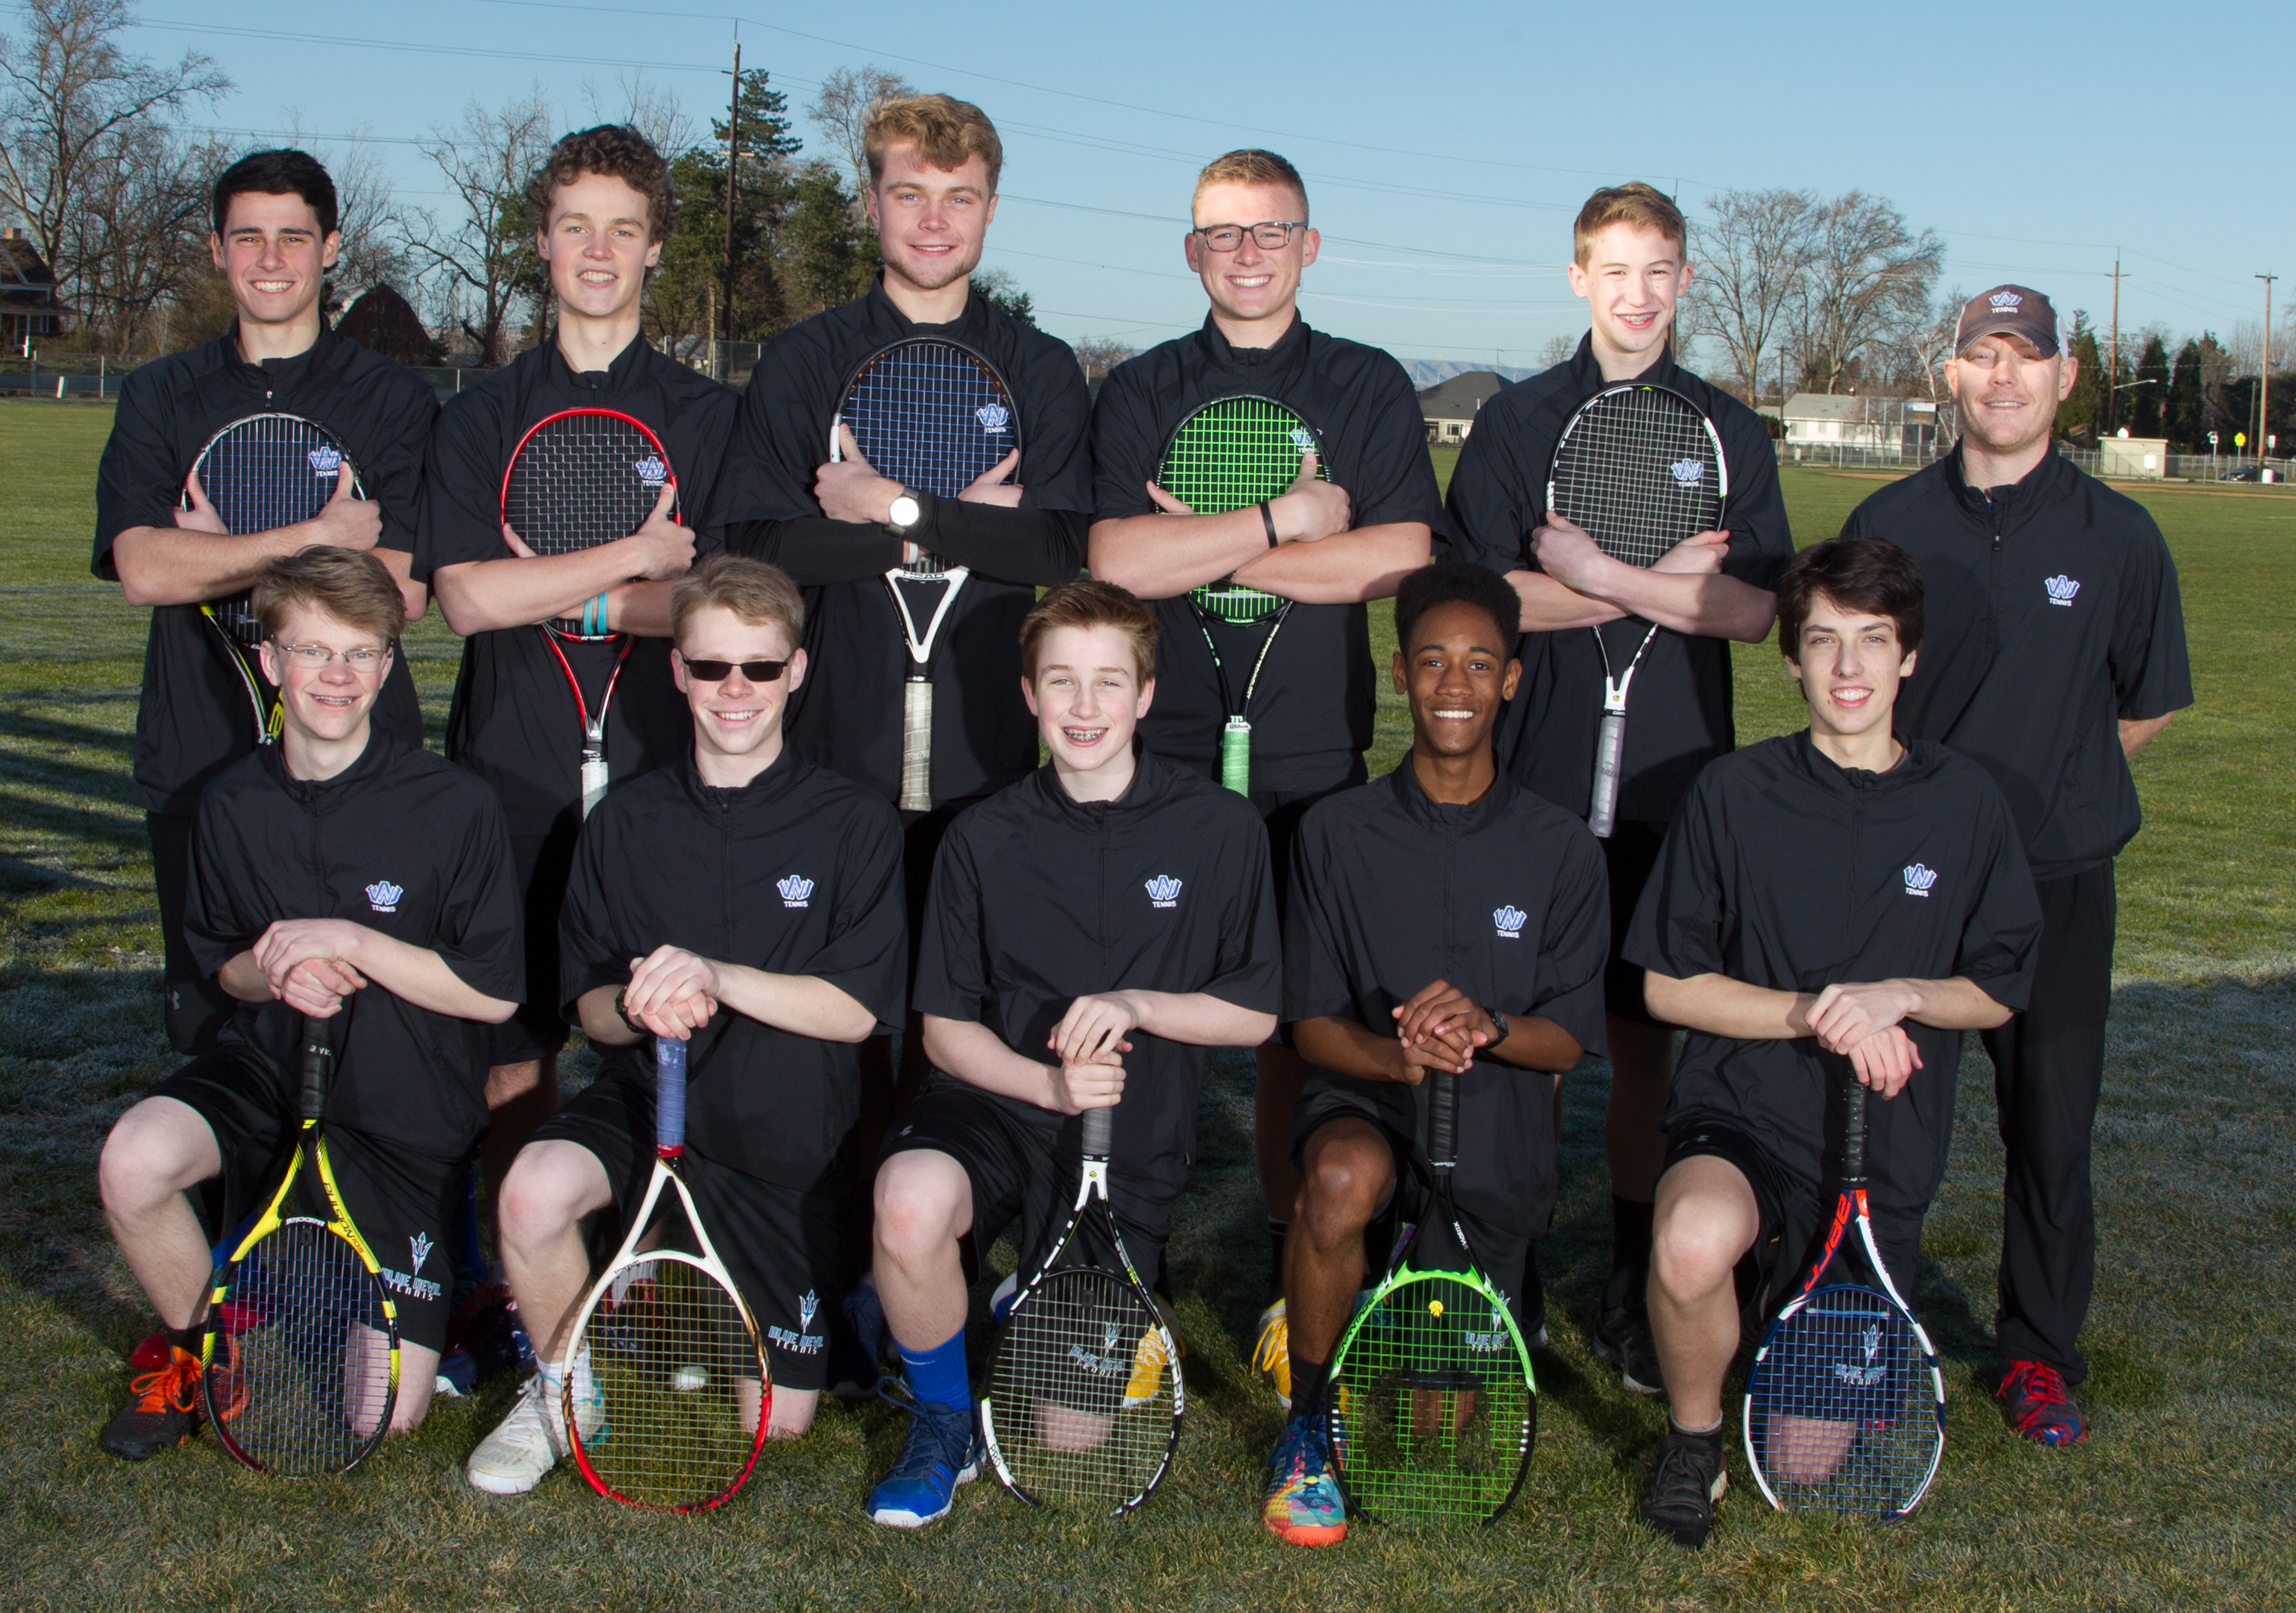 images/athletics/Tennis/2018_Boys_Tennis_Varsity.jpg